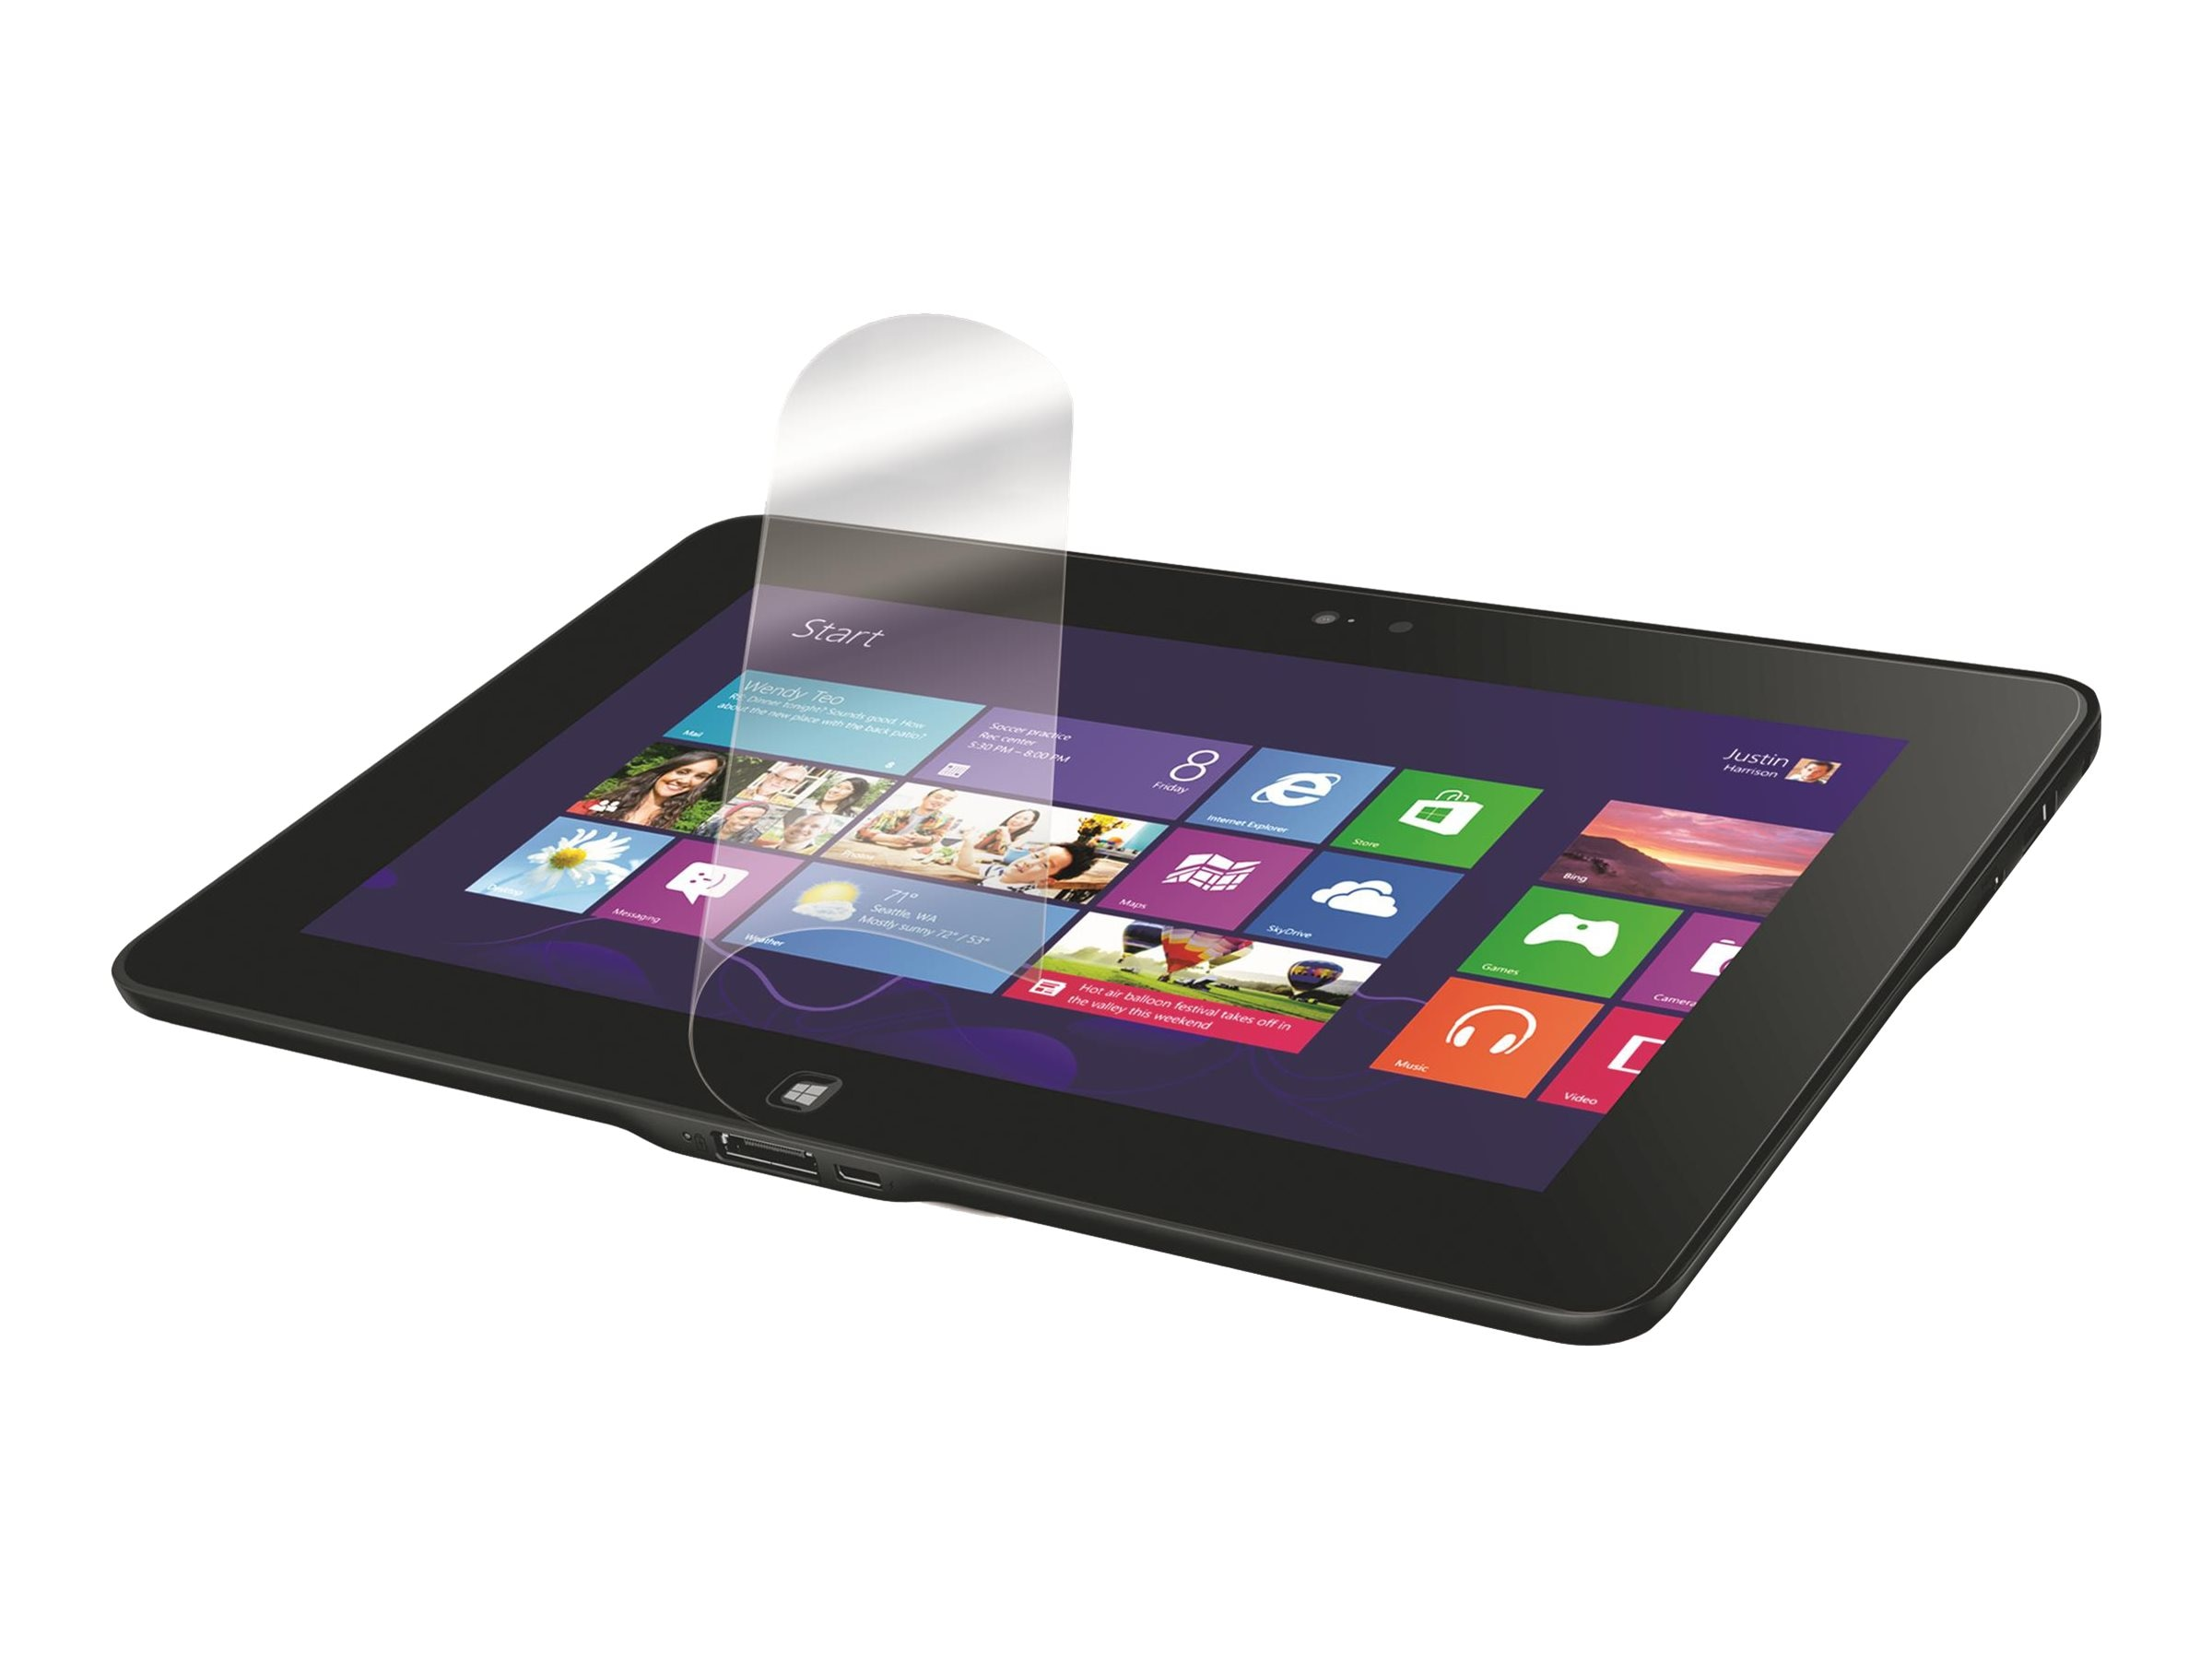 3M Anti-glare screen protector for Dell Venue 10 Pro